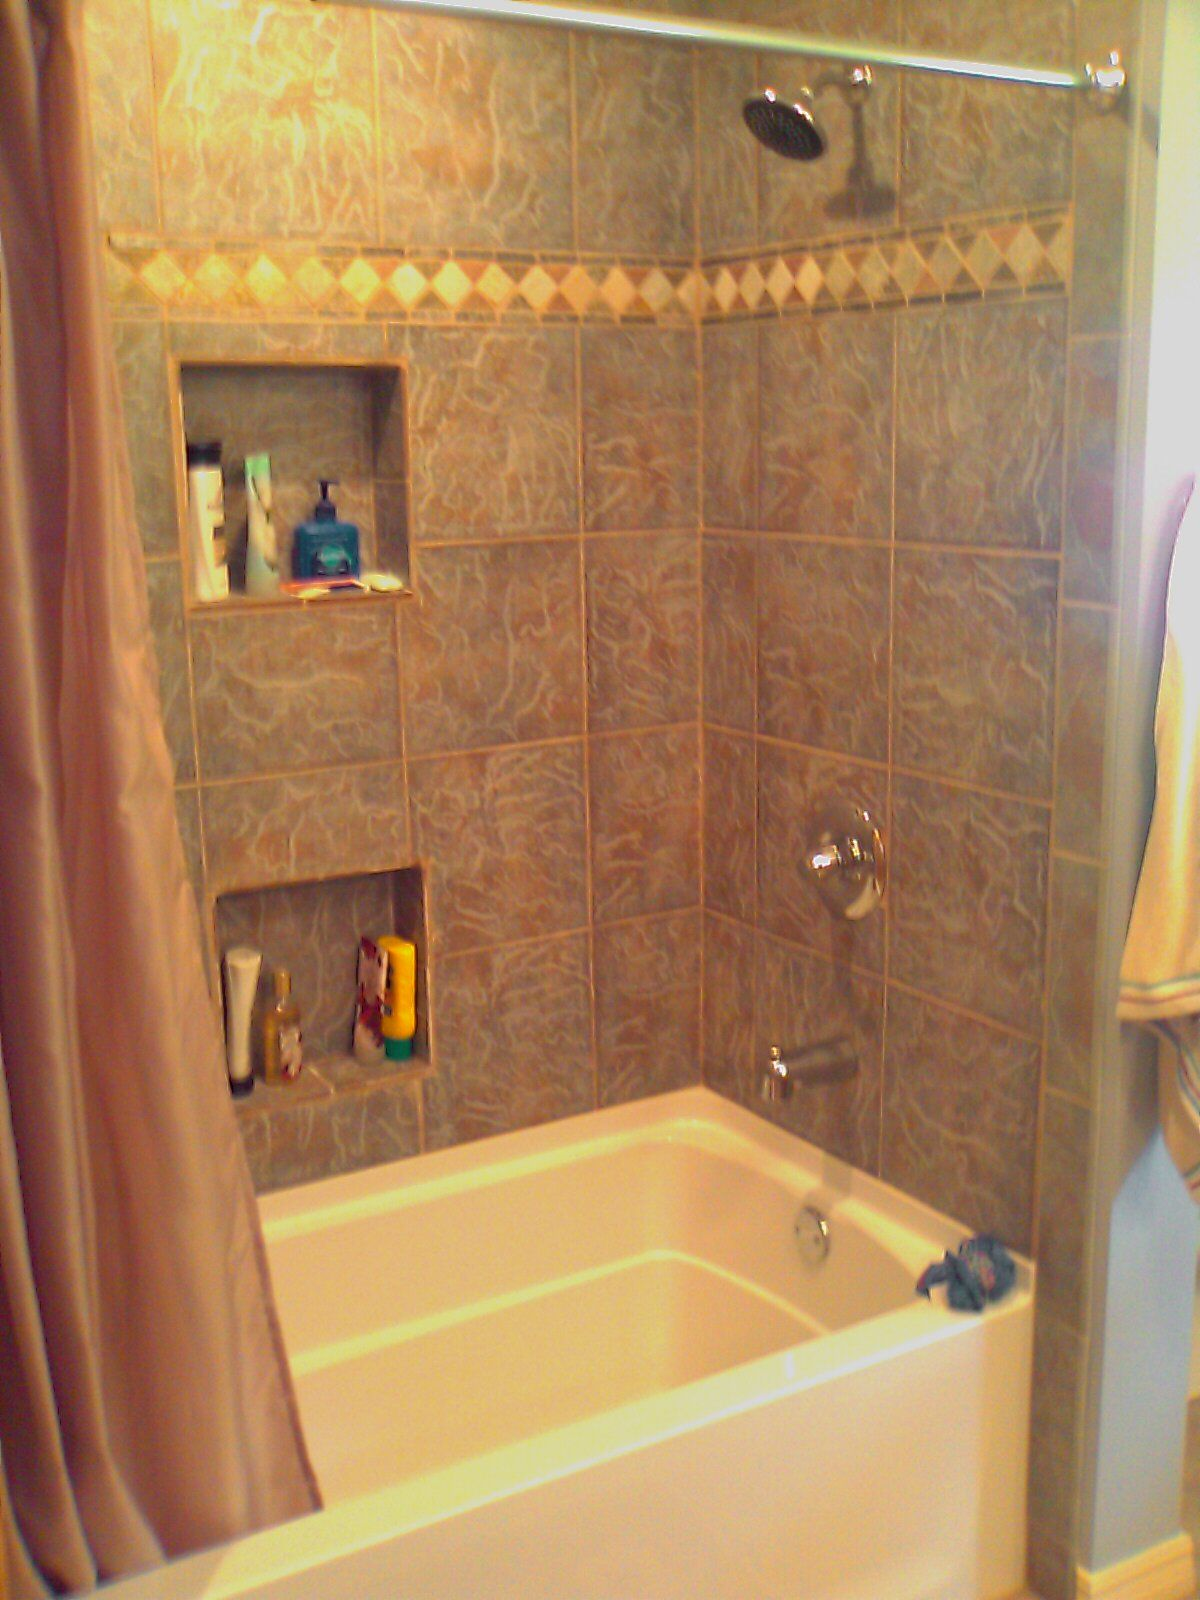 bathtub shower home tub color j change before img refinishing blue fiberglass